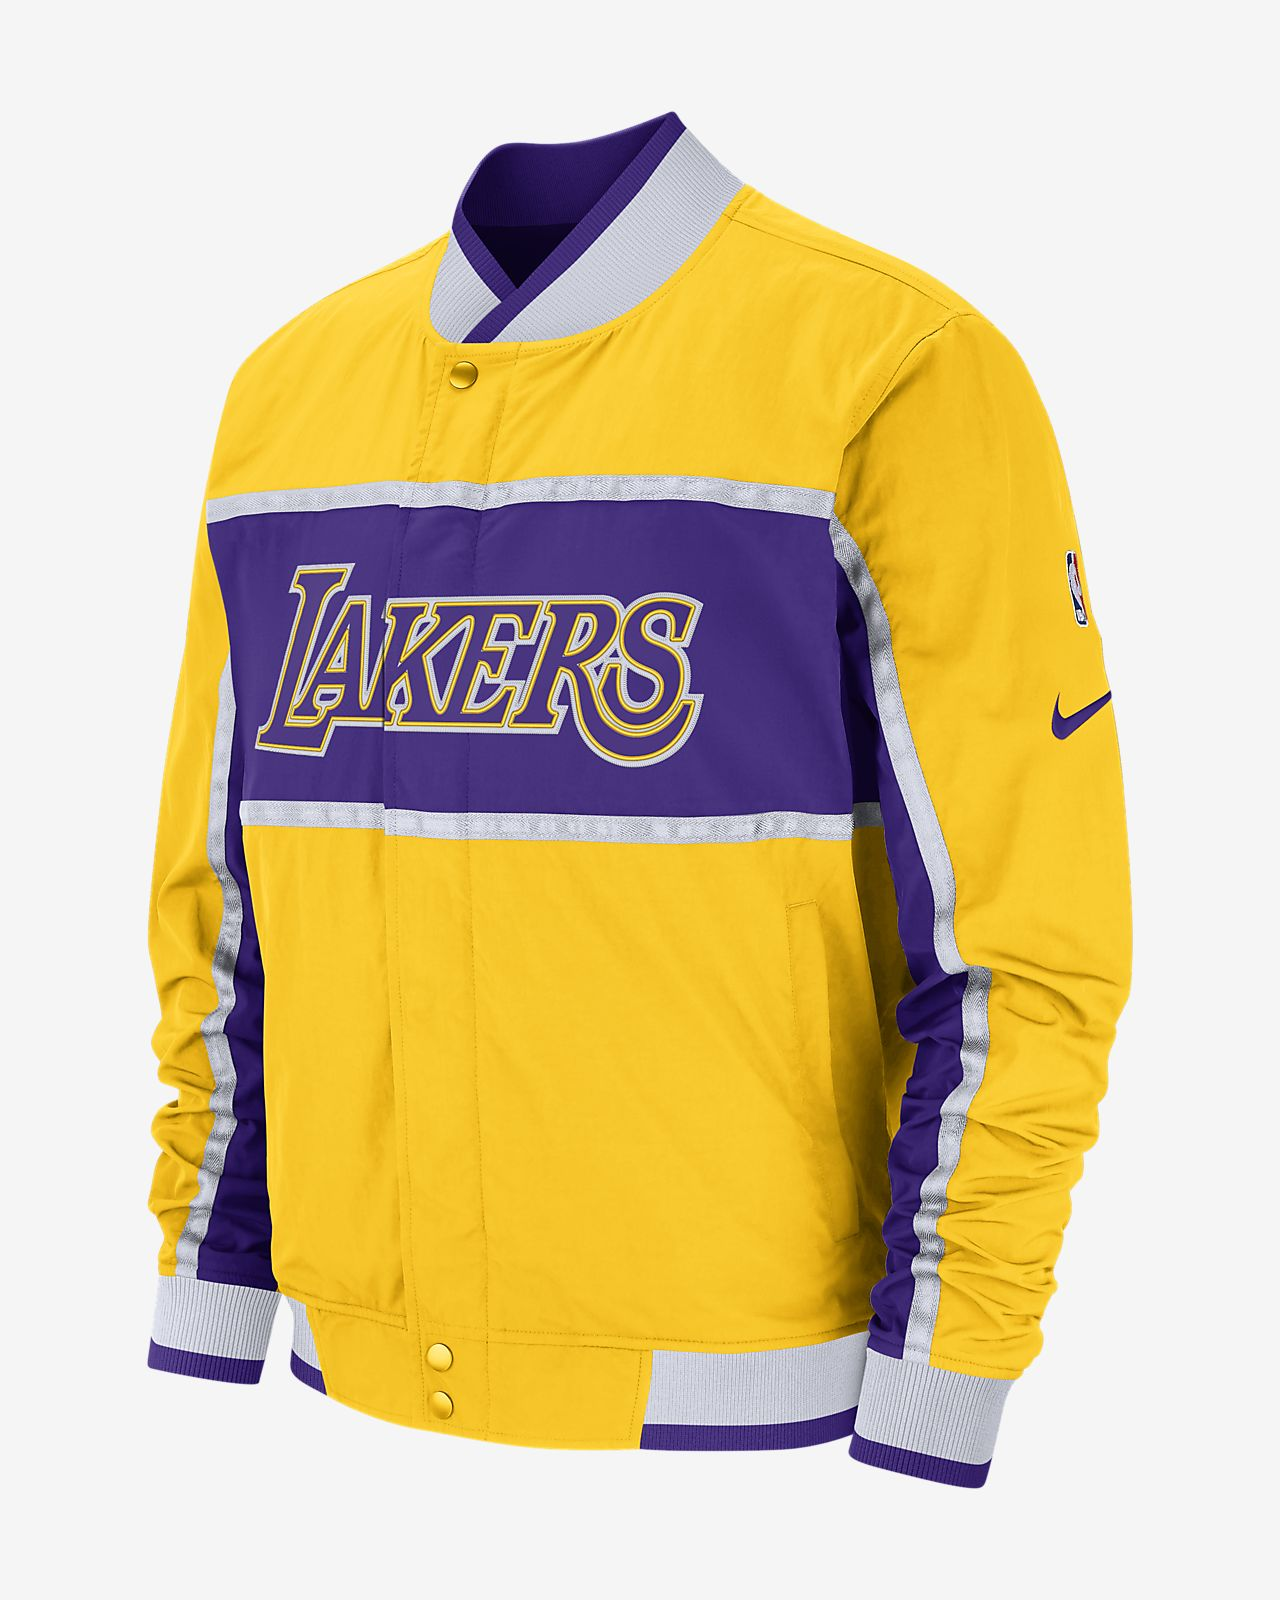 8c354614ec885a Los Angeles Lakers Nike Courtside Men s NBA Jacket. Nike.com CA